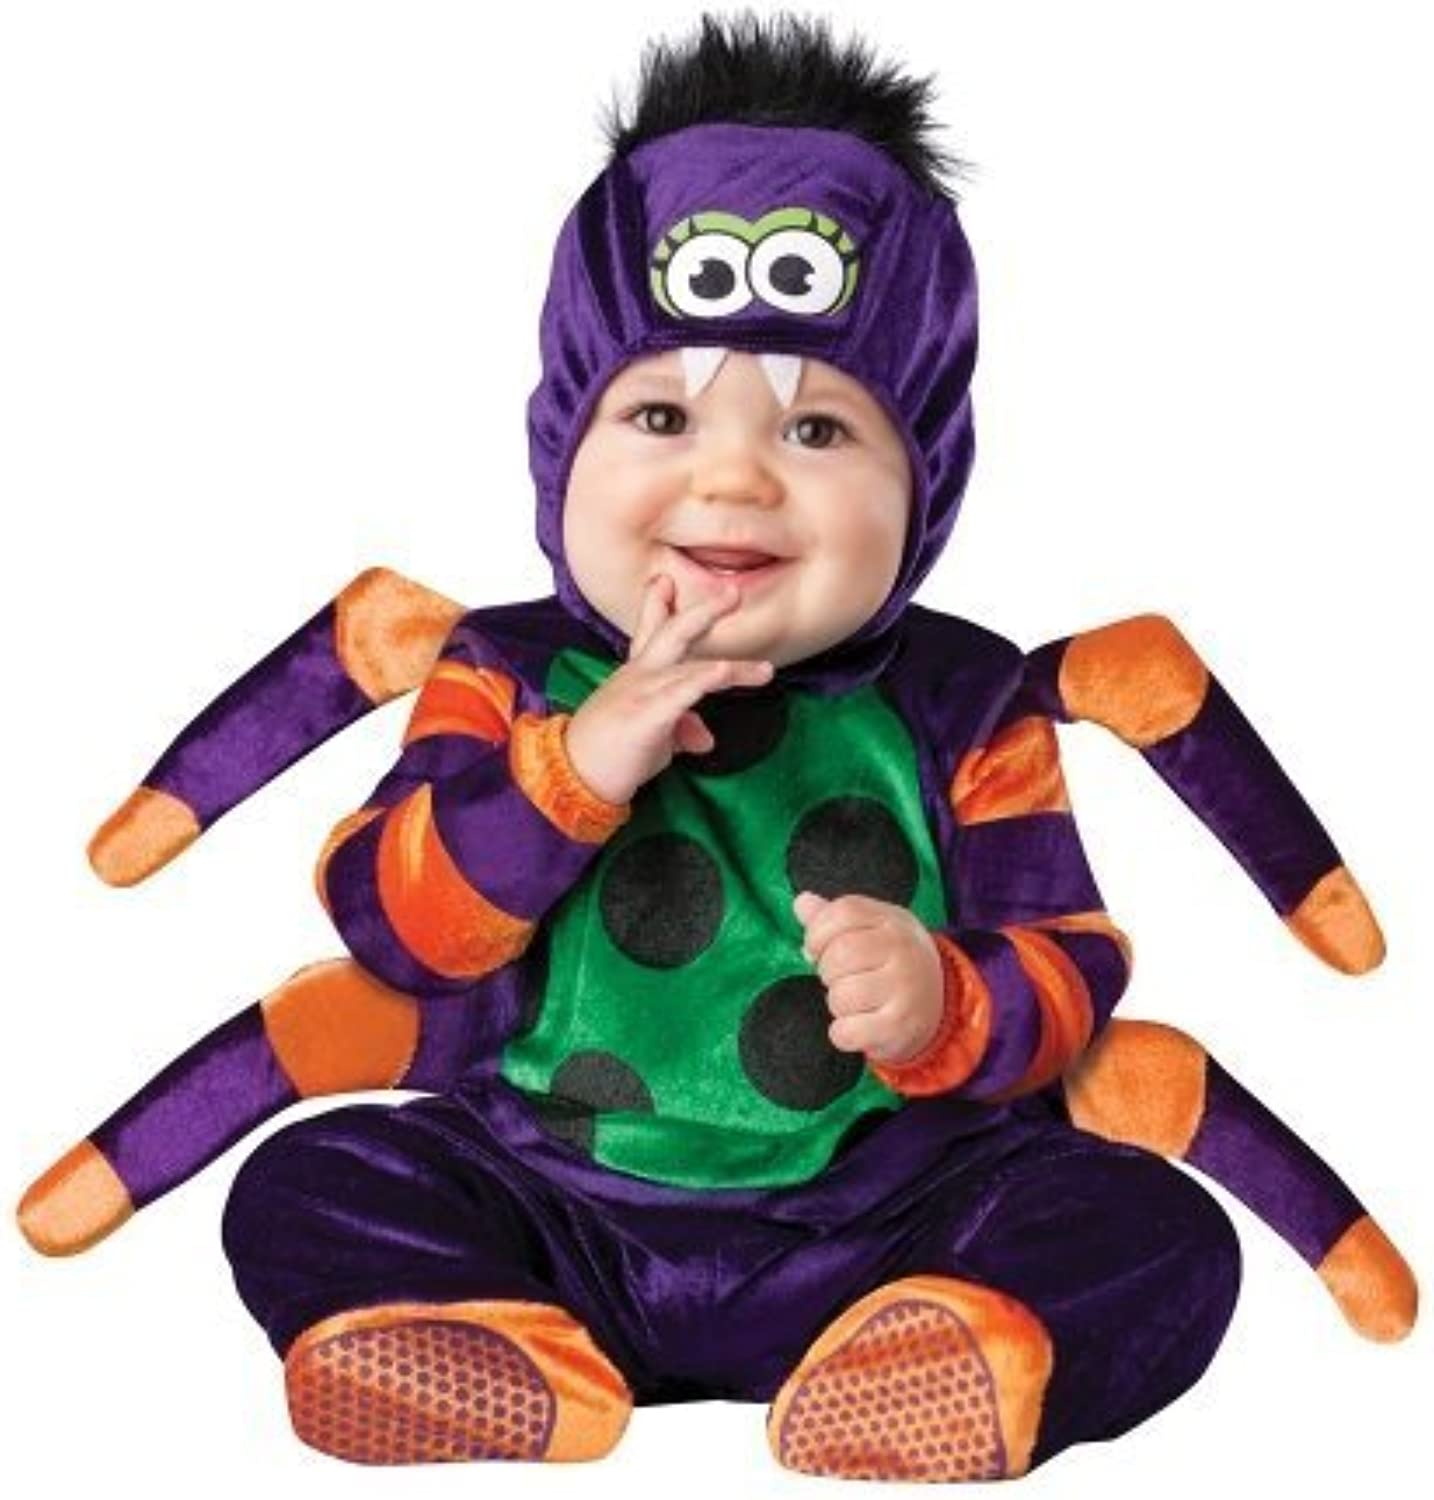 Itsy Bitsy Spider 2B Infant Costume (18M-2T) by Halloween FX